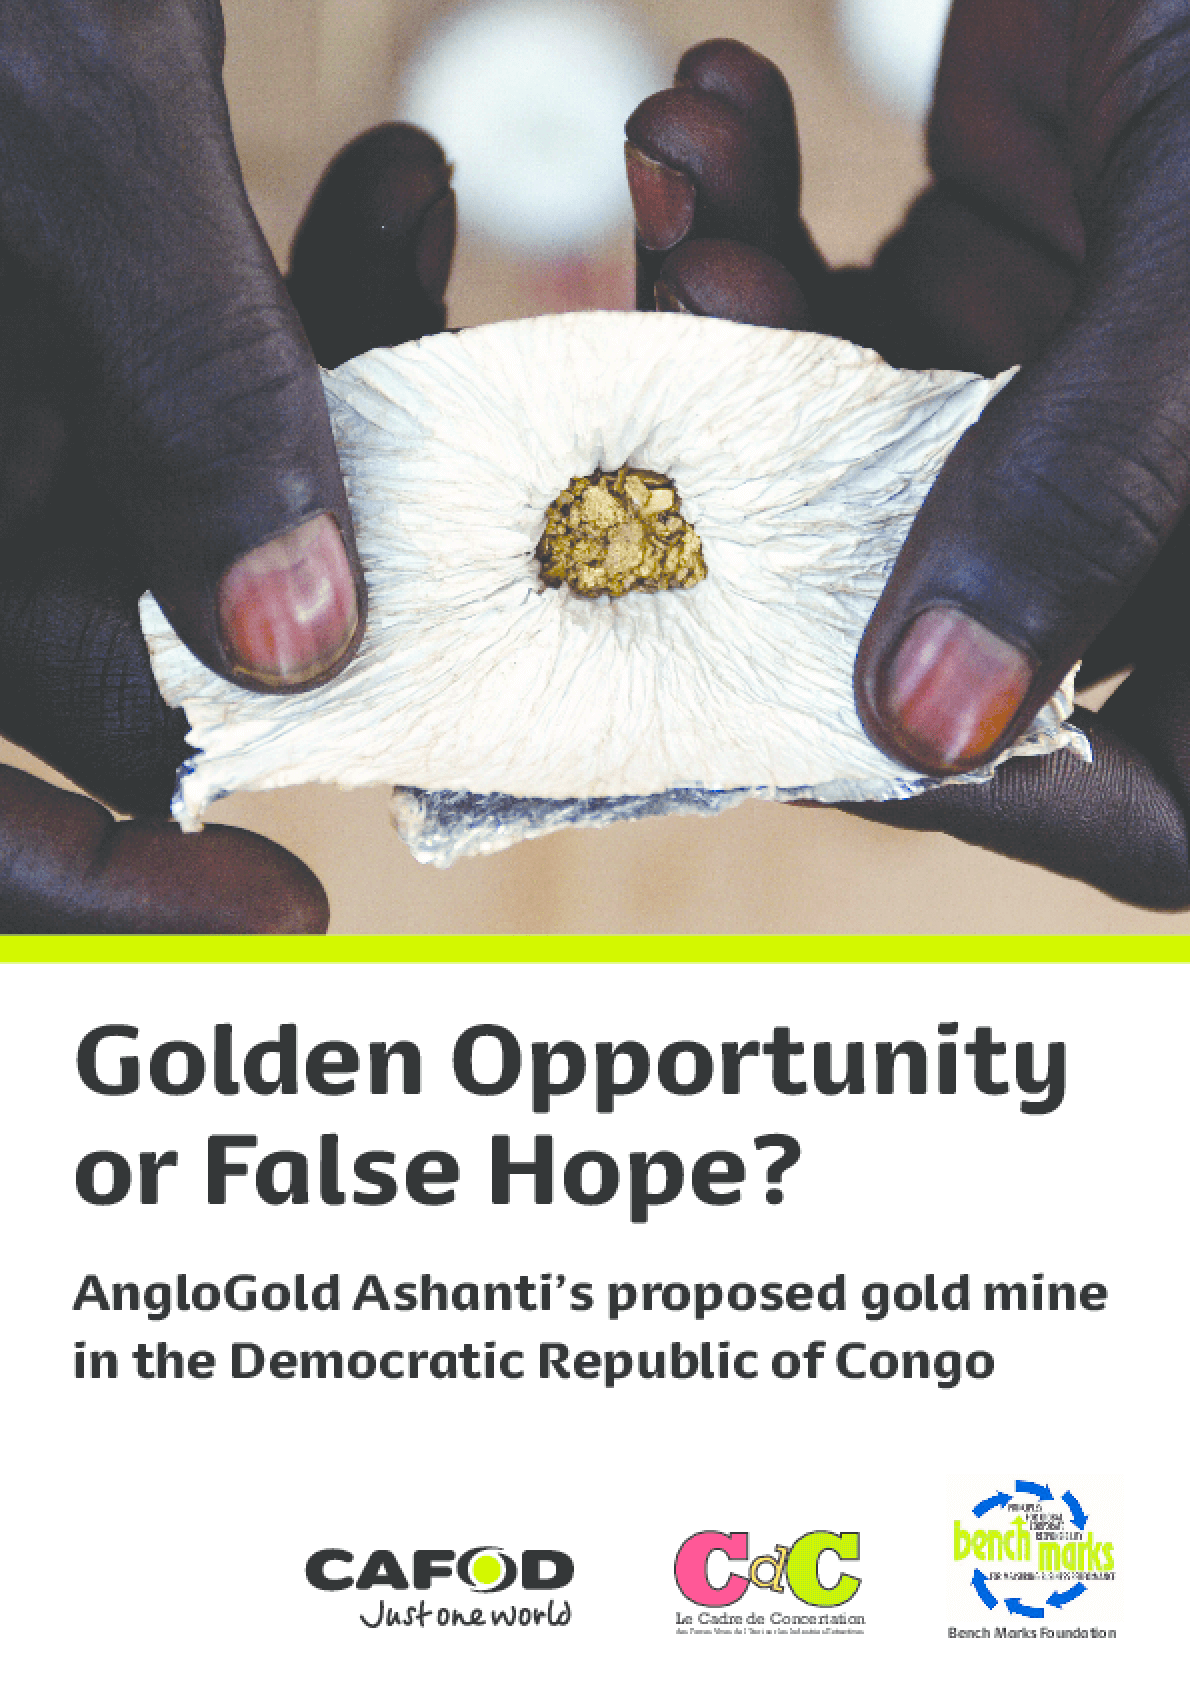 Golden Opportunity or False Hope? Anglogold Ashanti's Proposed Gold Mine in the Democratic Republic of Congo